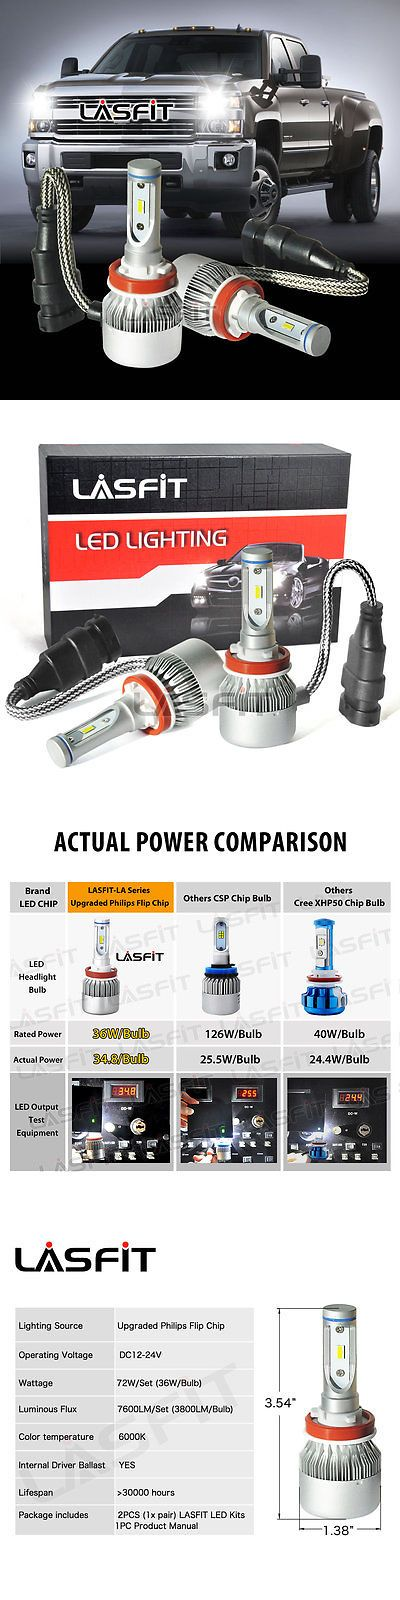 Car Lighting: H11 Led Low Beam Bulbs For Chevy Silverado 1500 2007-2015 2500 3500 Hd 2007-2016 -> BUY IT NOW ONLY: $49.99 on eBay!